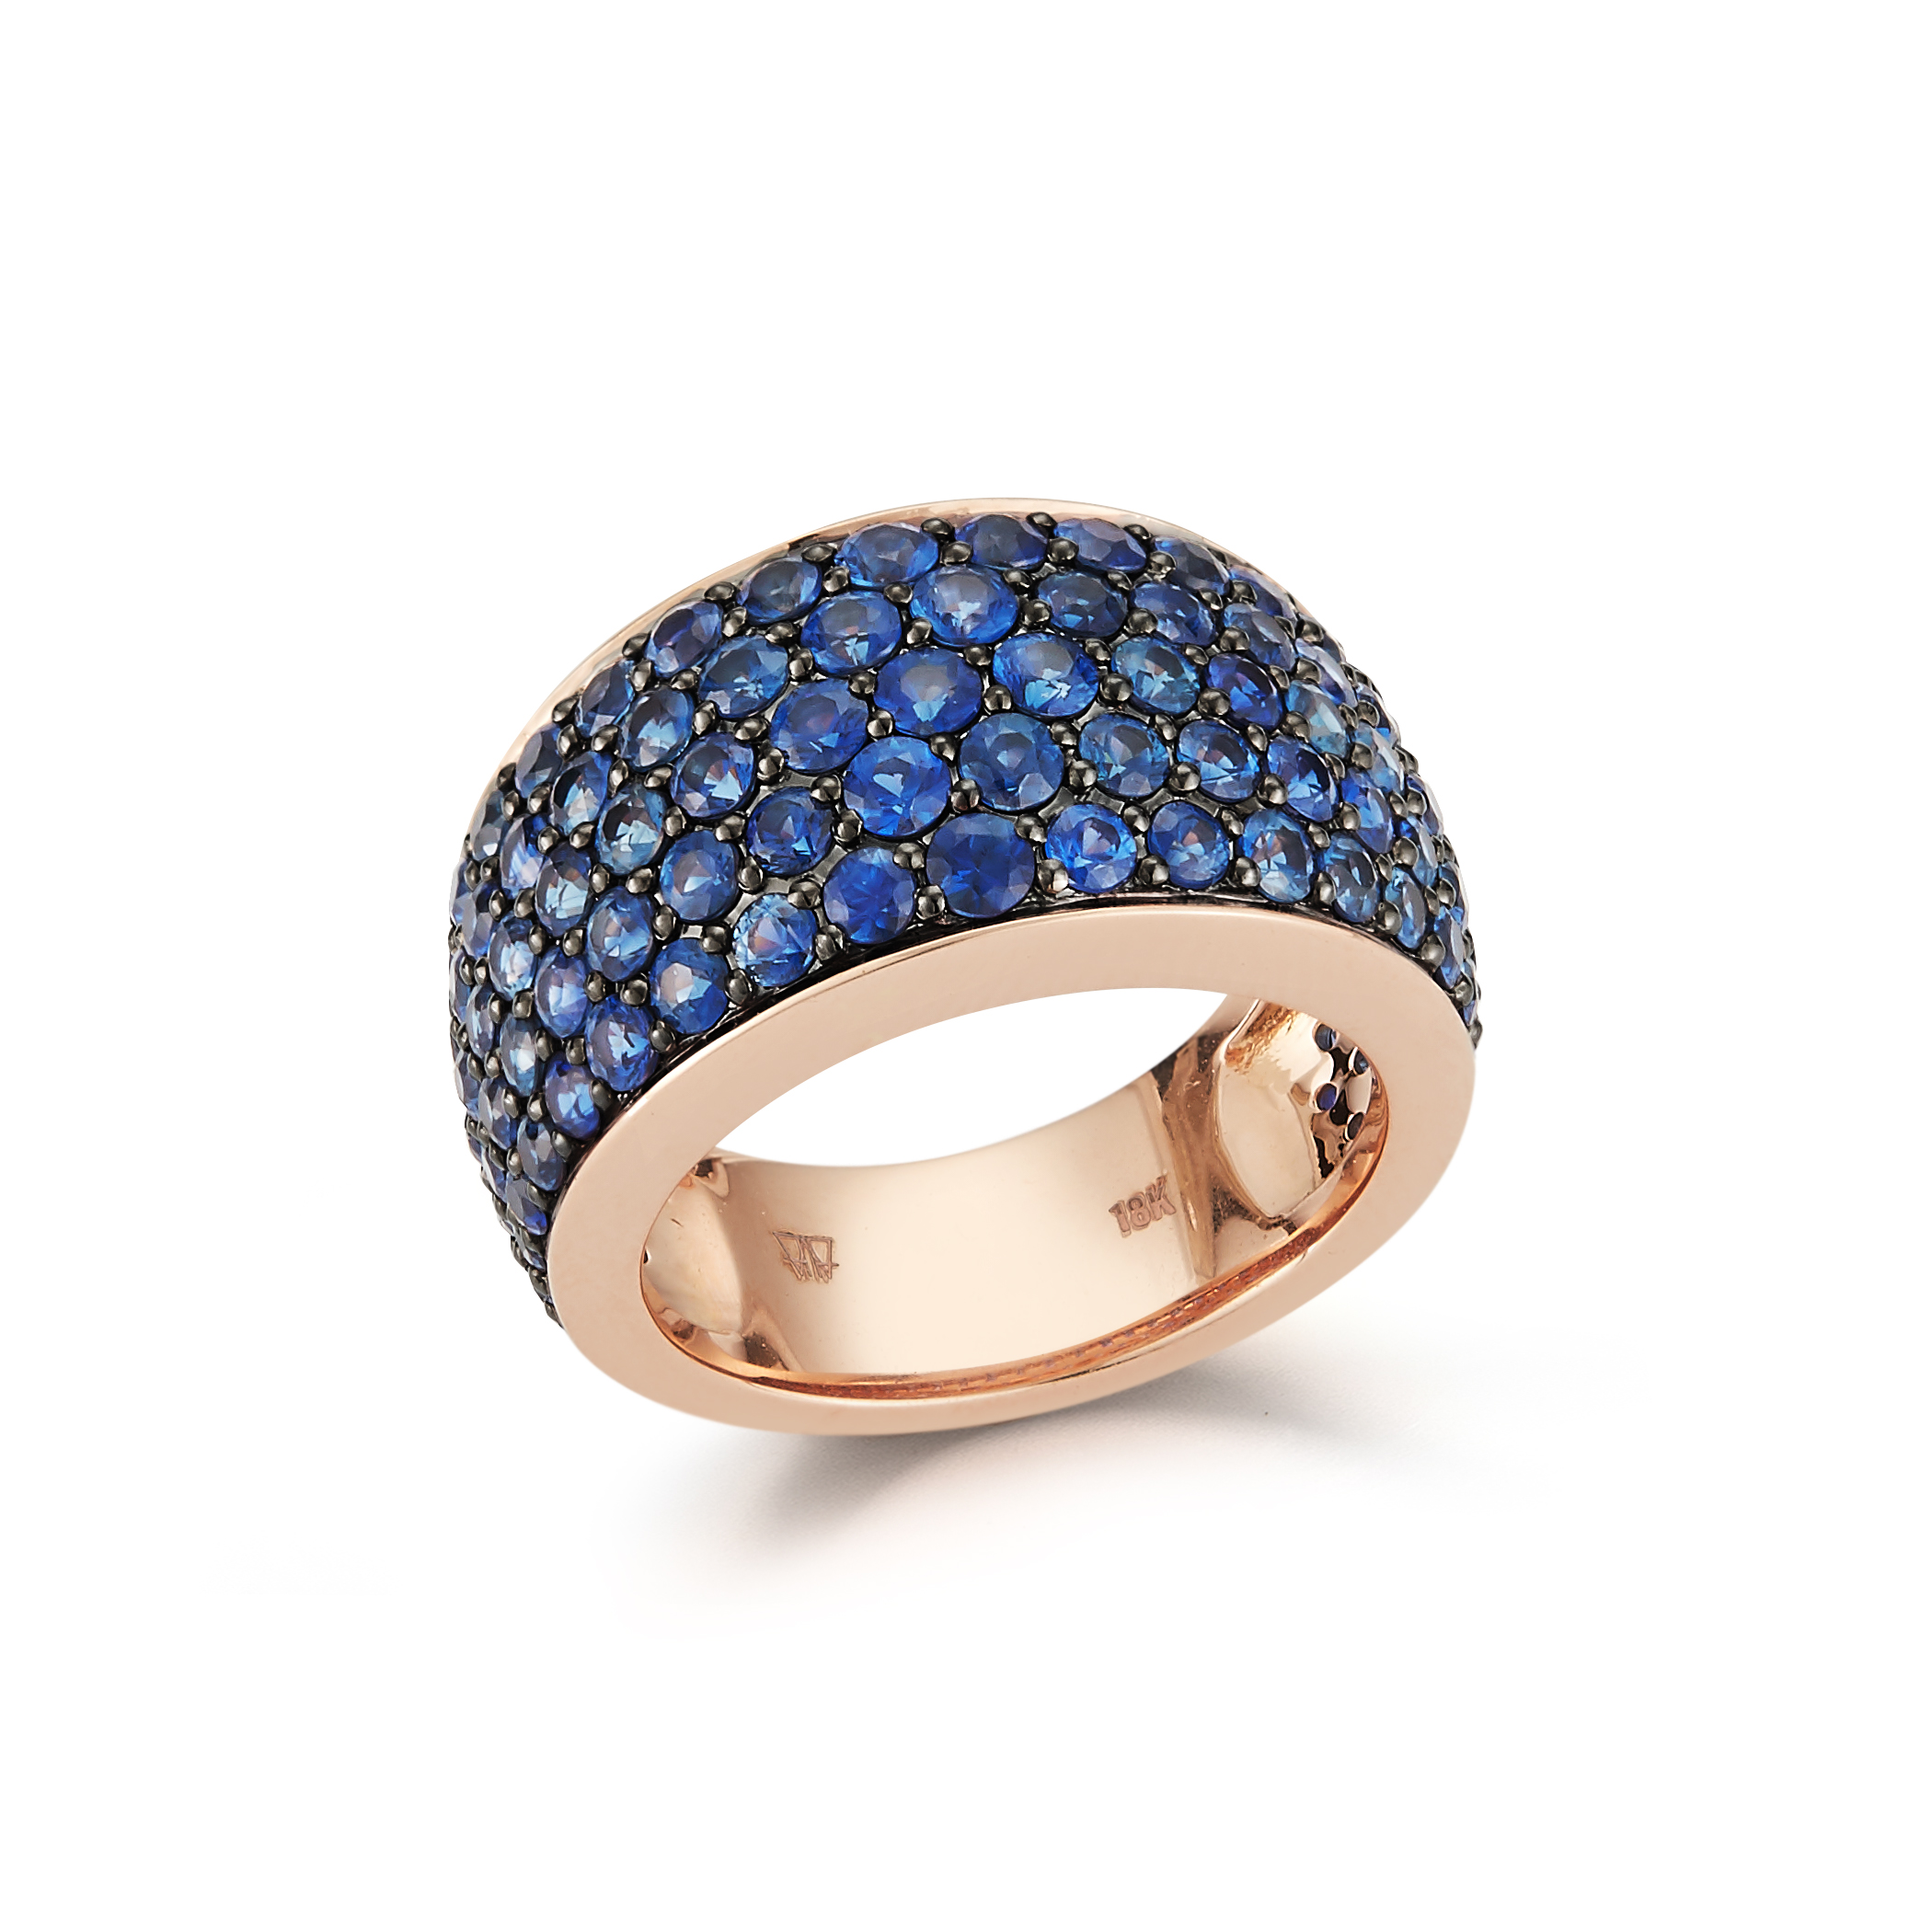 Walters Faith Lytton 18K Rose Gold Wide Ring With Diamond Edges JsGioNyHNy